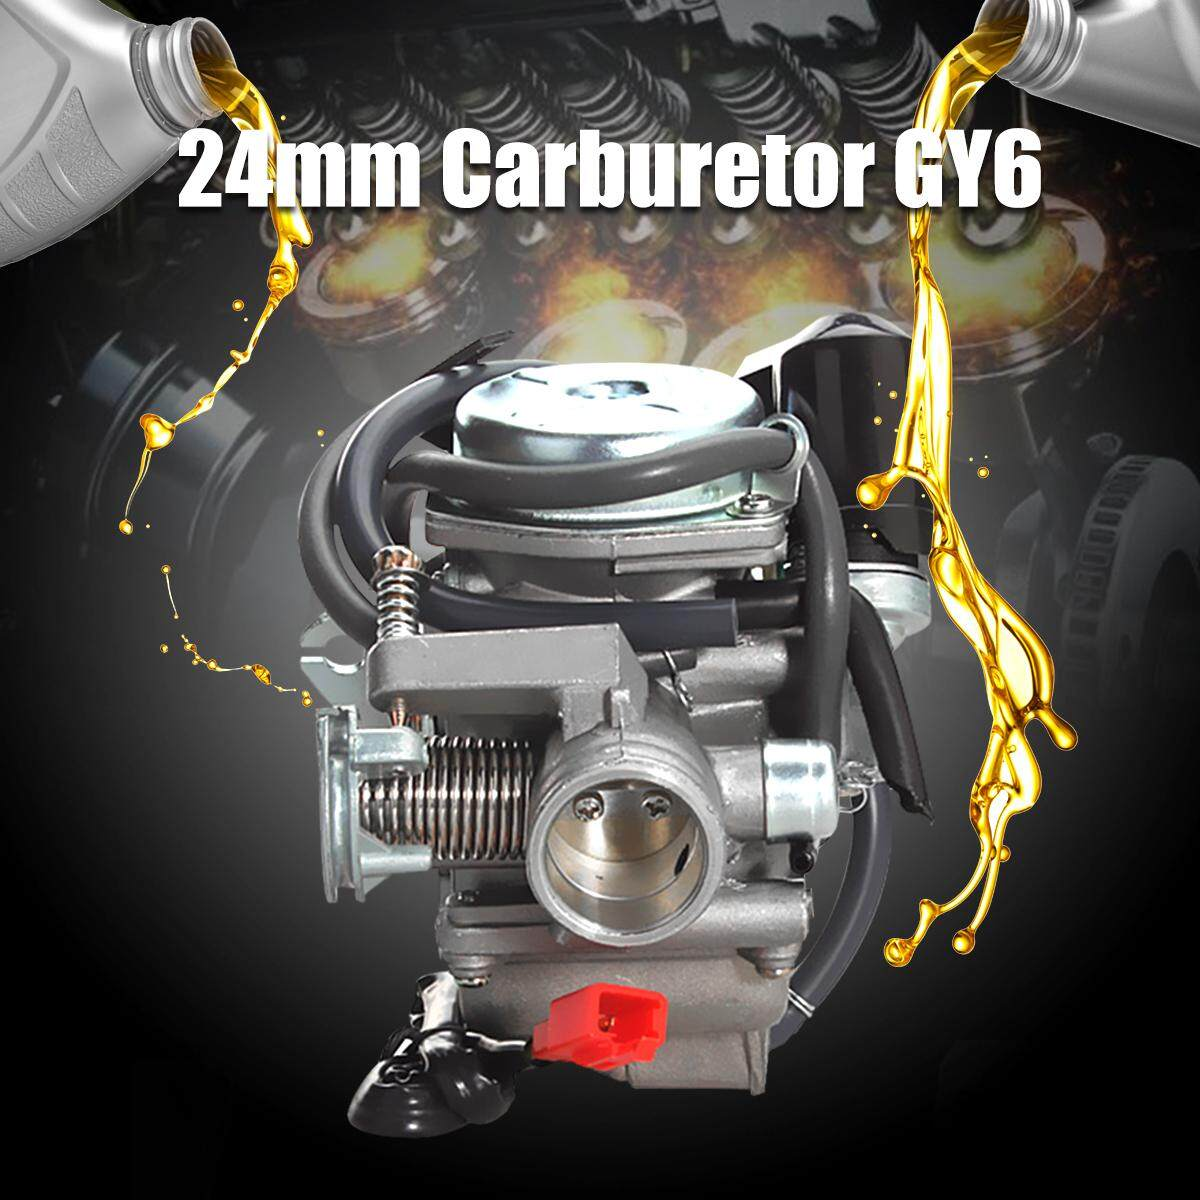 hight resolution of package includes 1 x carburetor